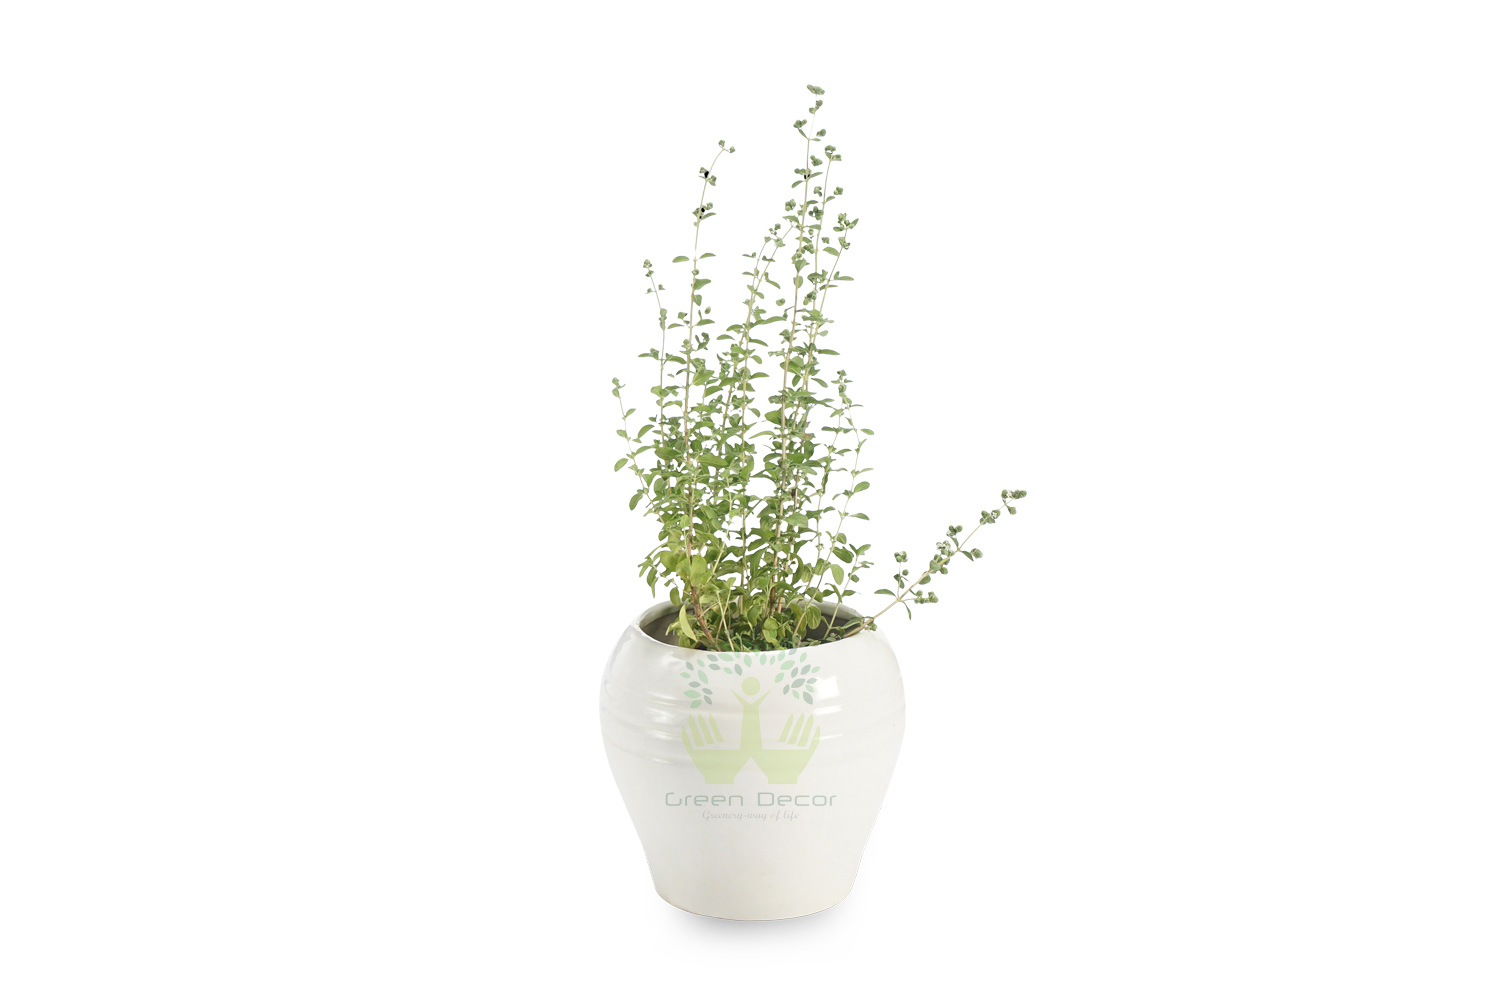 Buy Oregano Plants , White Pots and seeds in Delhi NCR by the best online nursery shop Greendecor.